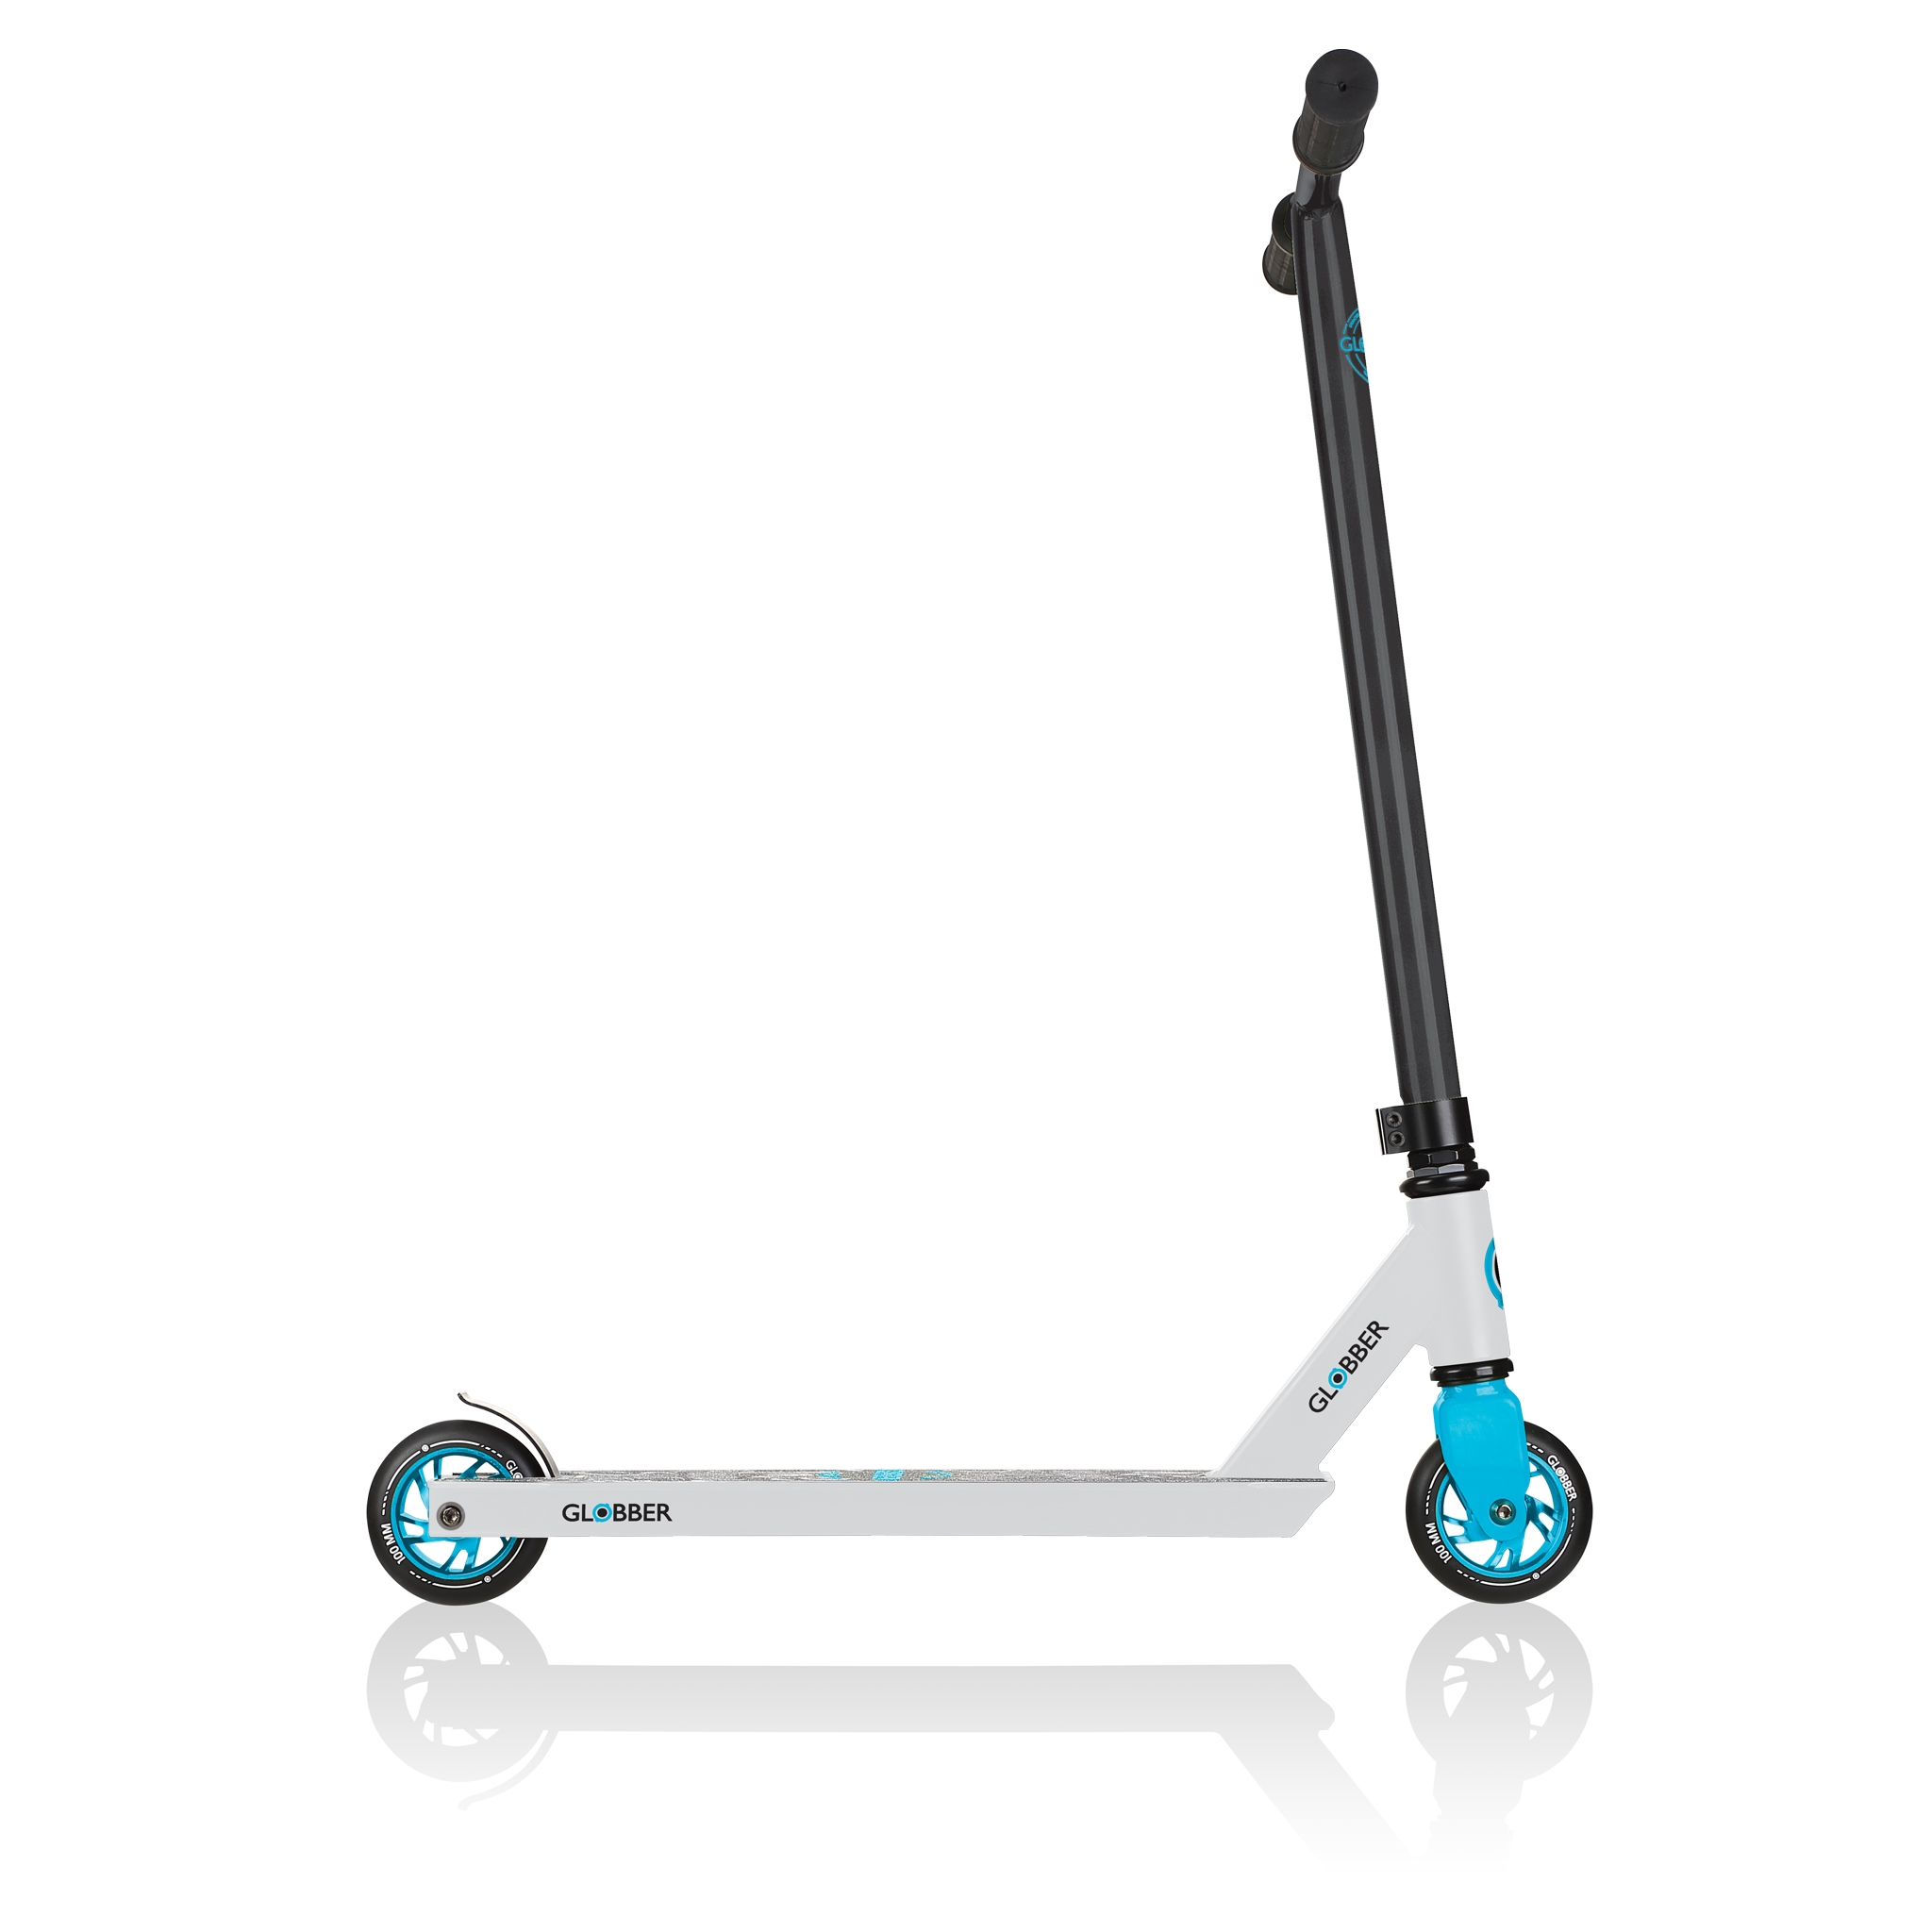 stunt scooter for kids and teens aged 8+ - Globber GS 360 3